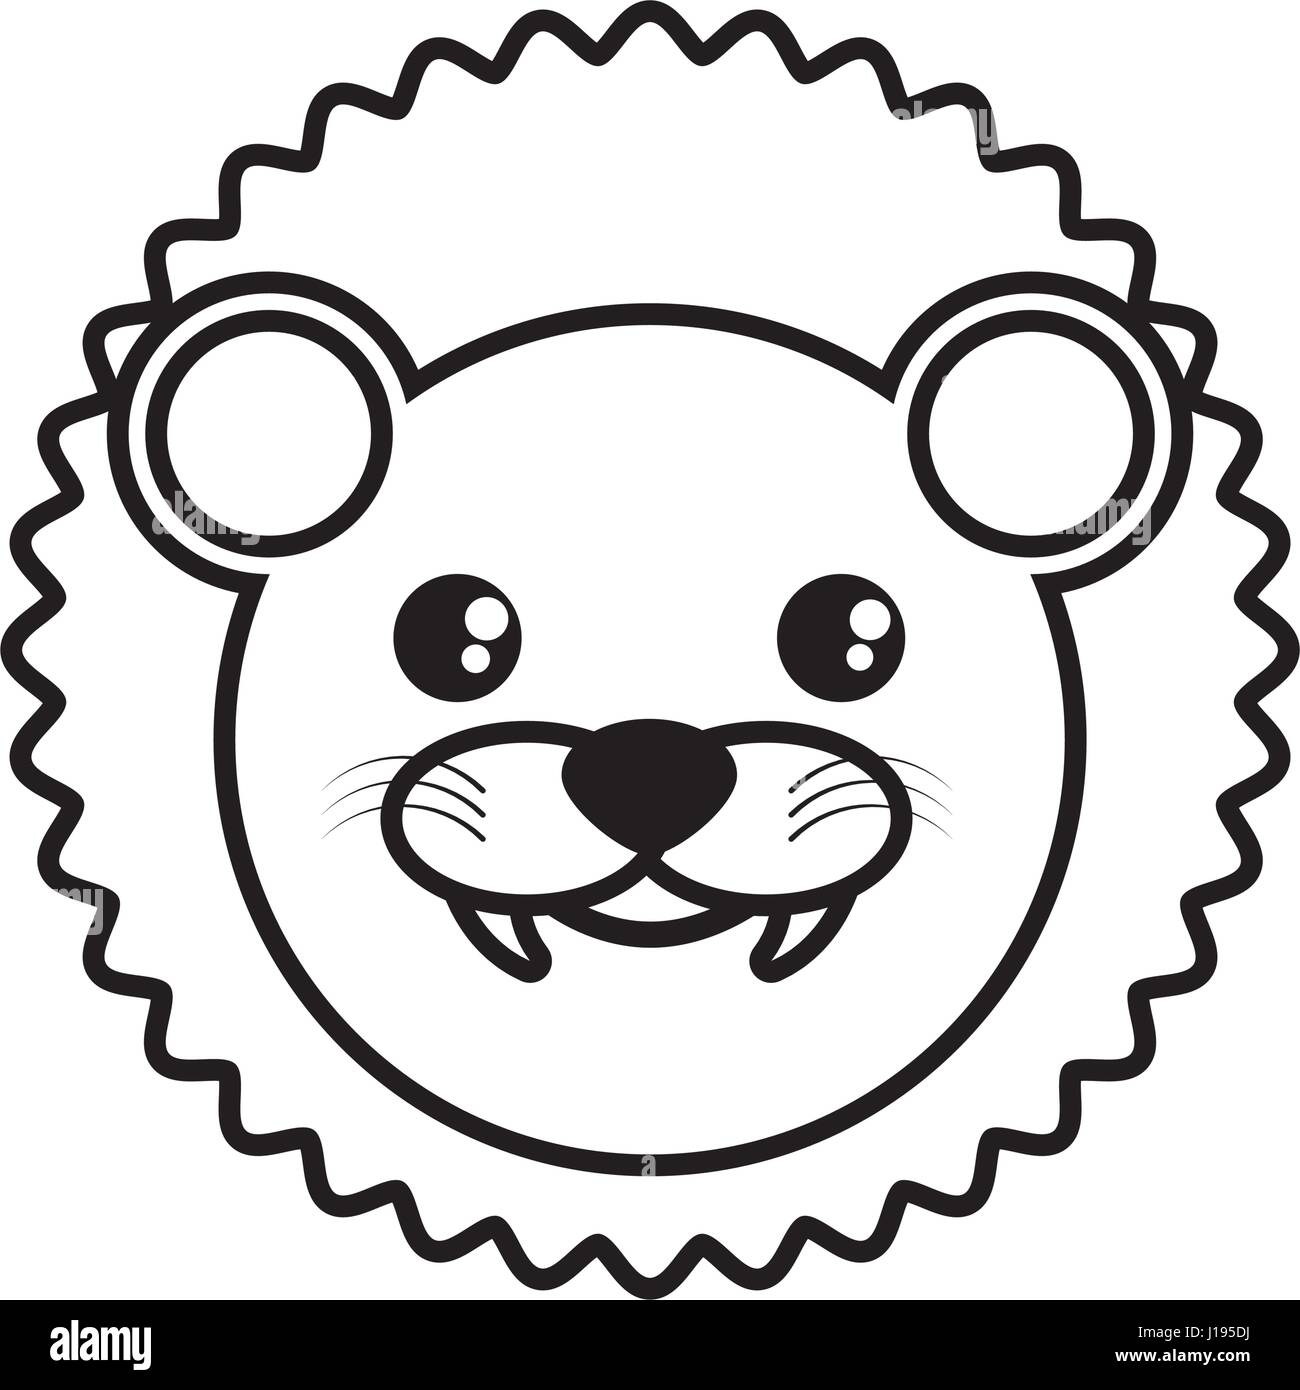 Outline Lion Head Animal Vector High Resolution Stock Photography And Images Alamy If you have any other questions, please check the faq section. https www alamy com stock photo face lion animal outline 138499470 html